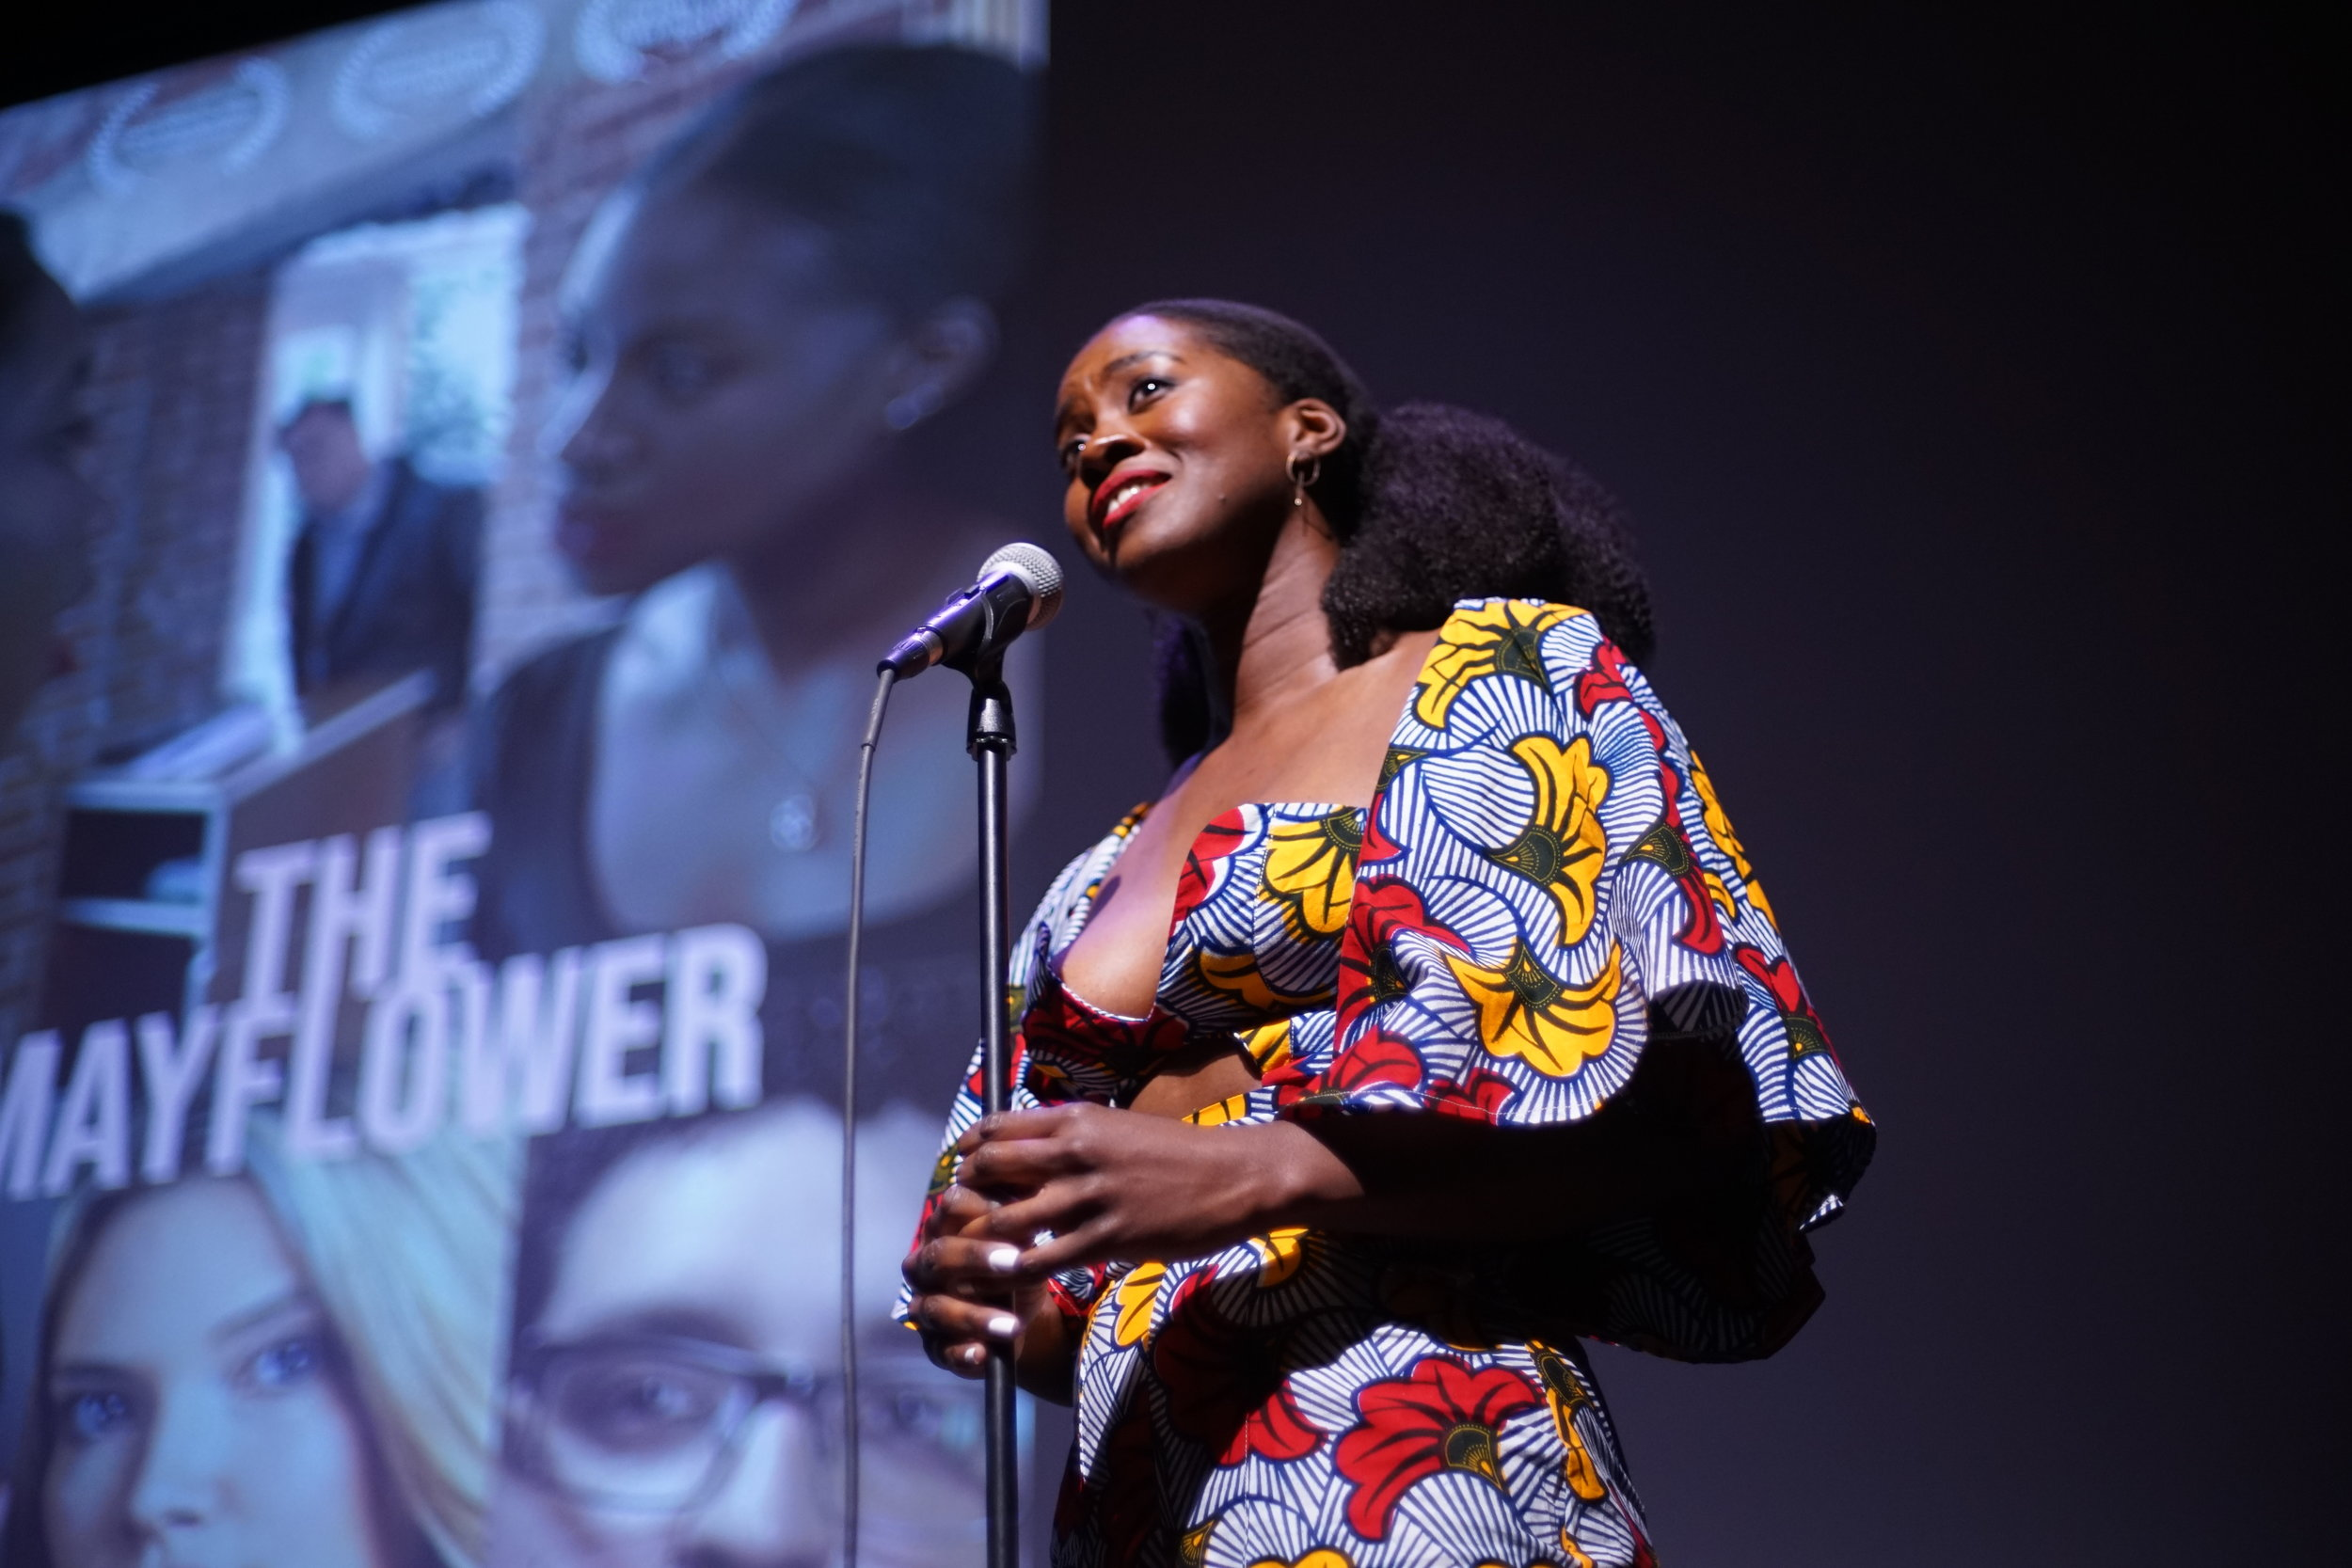 Writer/Creator/Female Lead Eposi Litumbe speaks during Private Fundraising event | Photo by George Carles